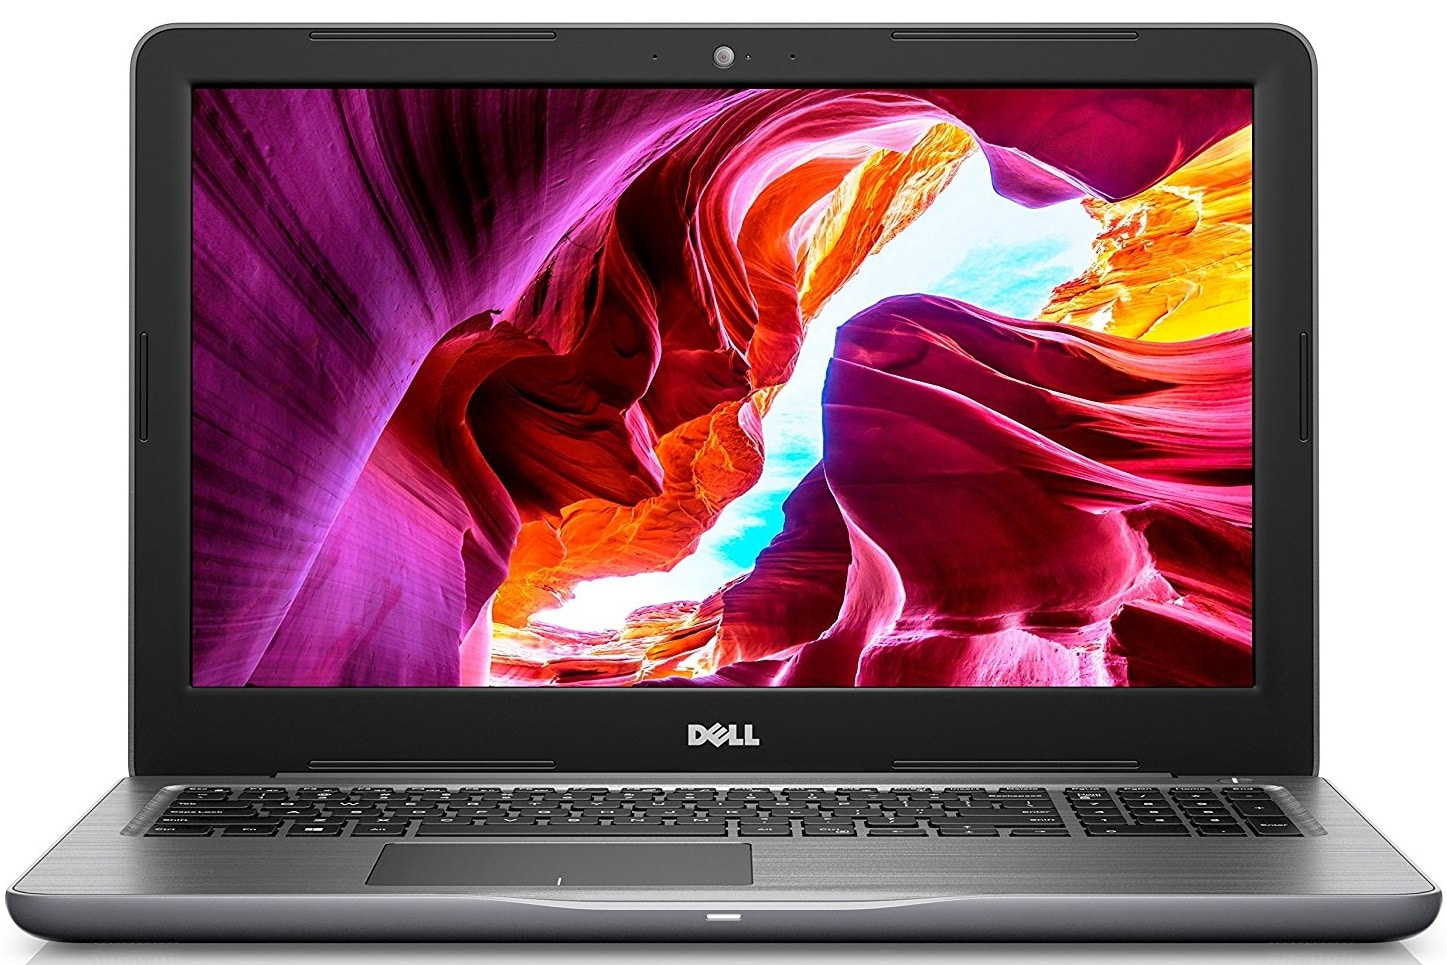 Dell Inspiron best laptop under 700 pounds uk